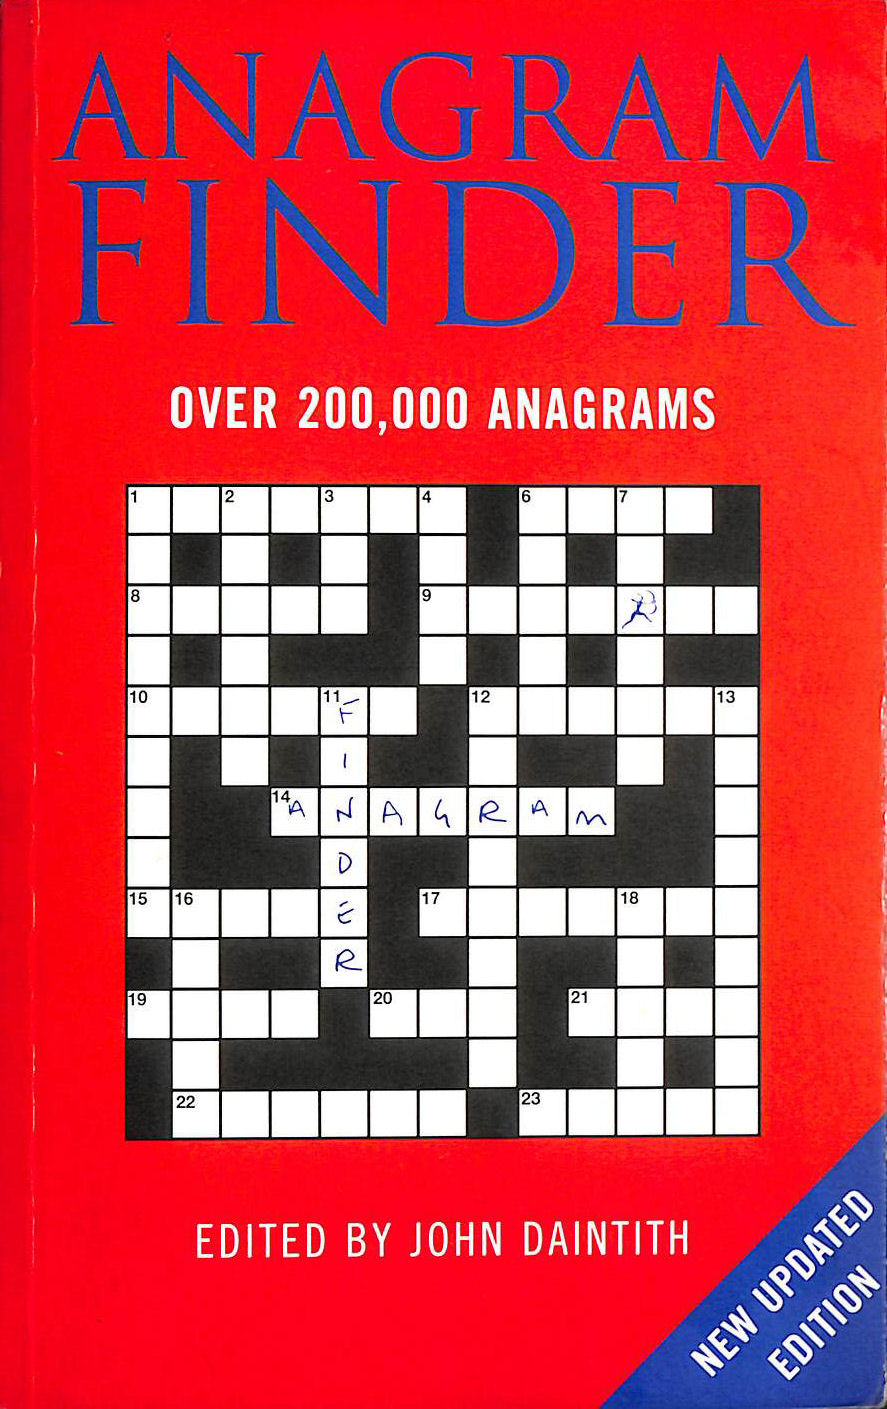 Image for Bloomsbury Anagram Finder: Over 200,000 Anagrams